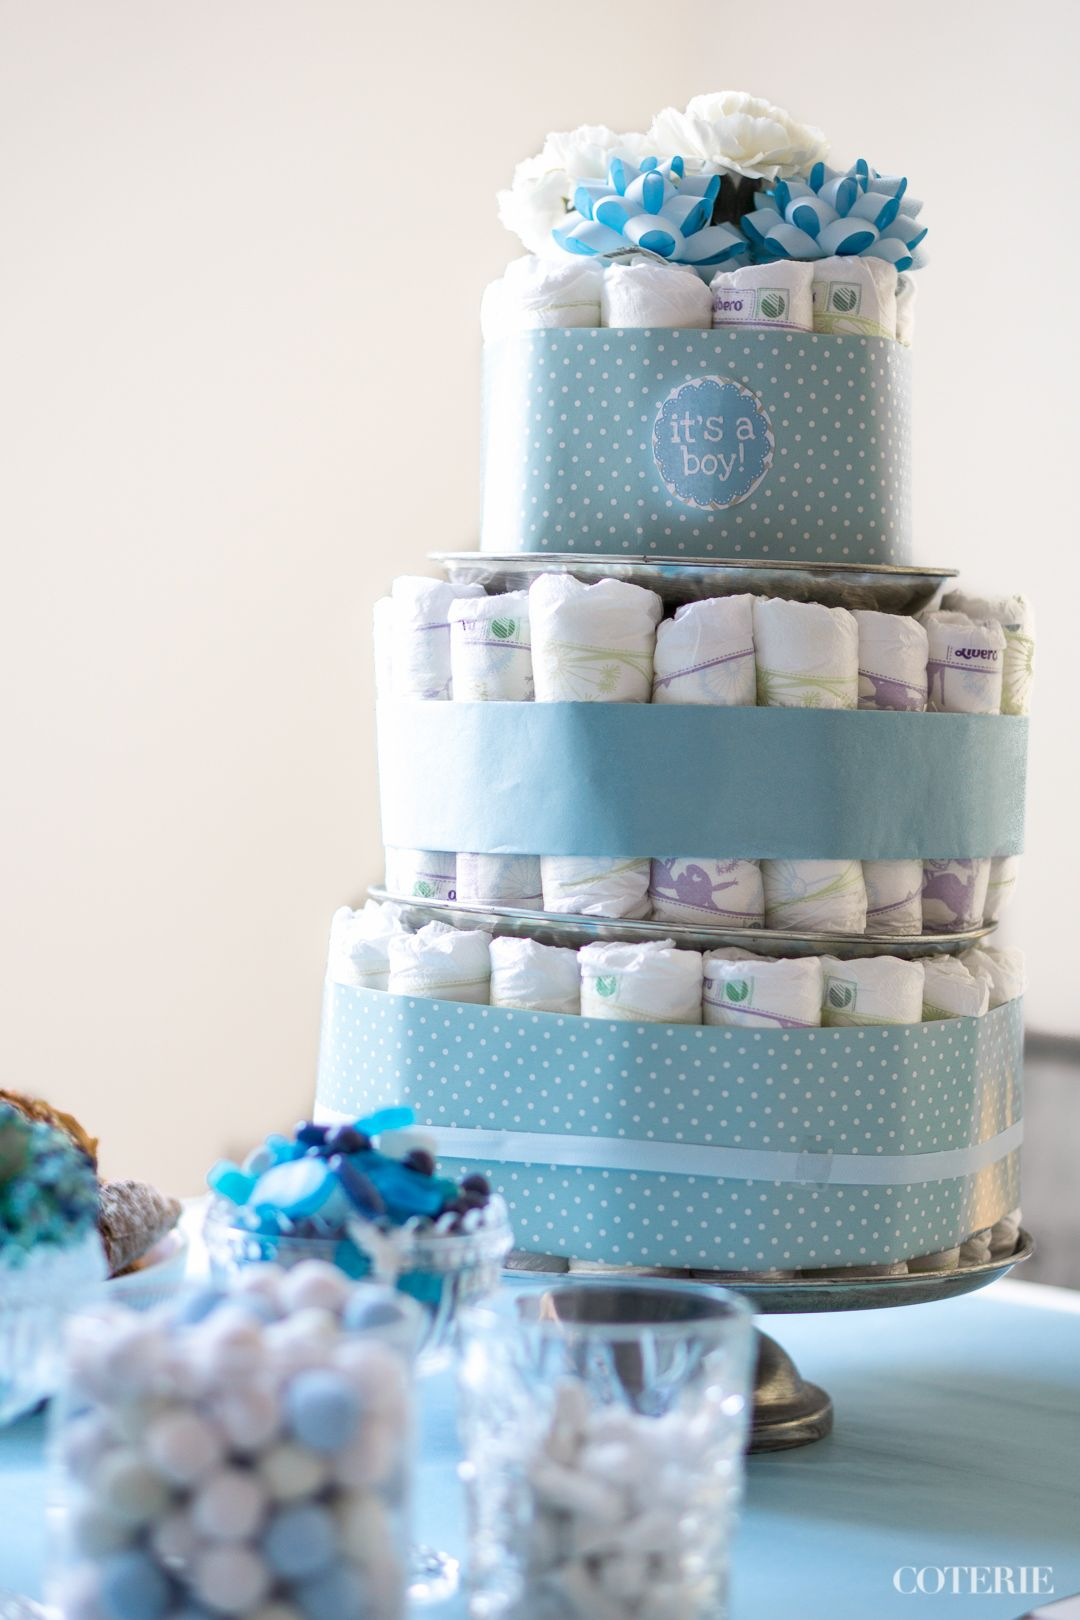 It's a boy! Decoration ideas for a baby shower.  A classic diaper cake was the centerpiece of the table. <3  Check out the whole blog post here: http://www.coterie.fi/baby-shower-for-a-boy-vauvakutsut-pojalle/